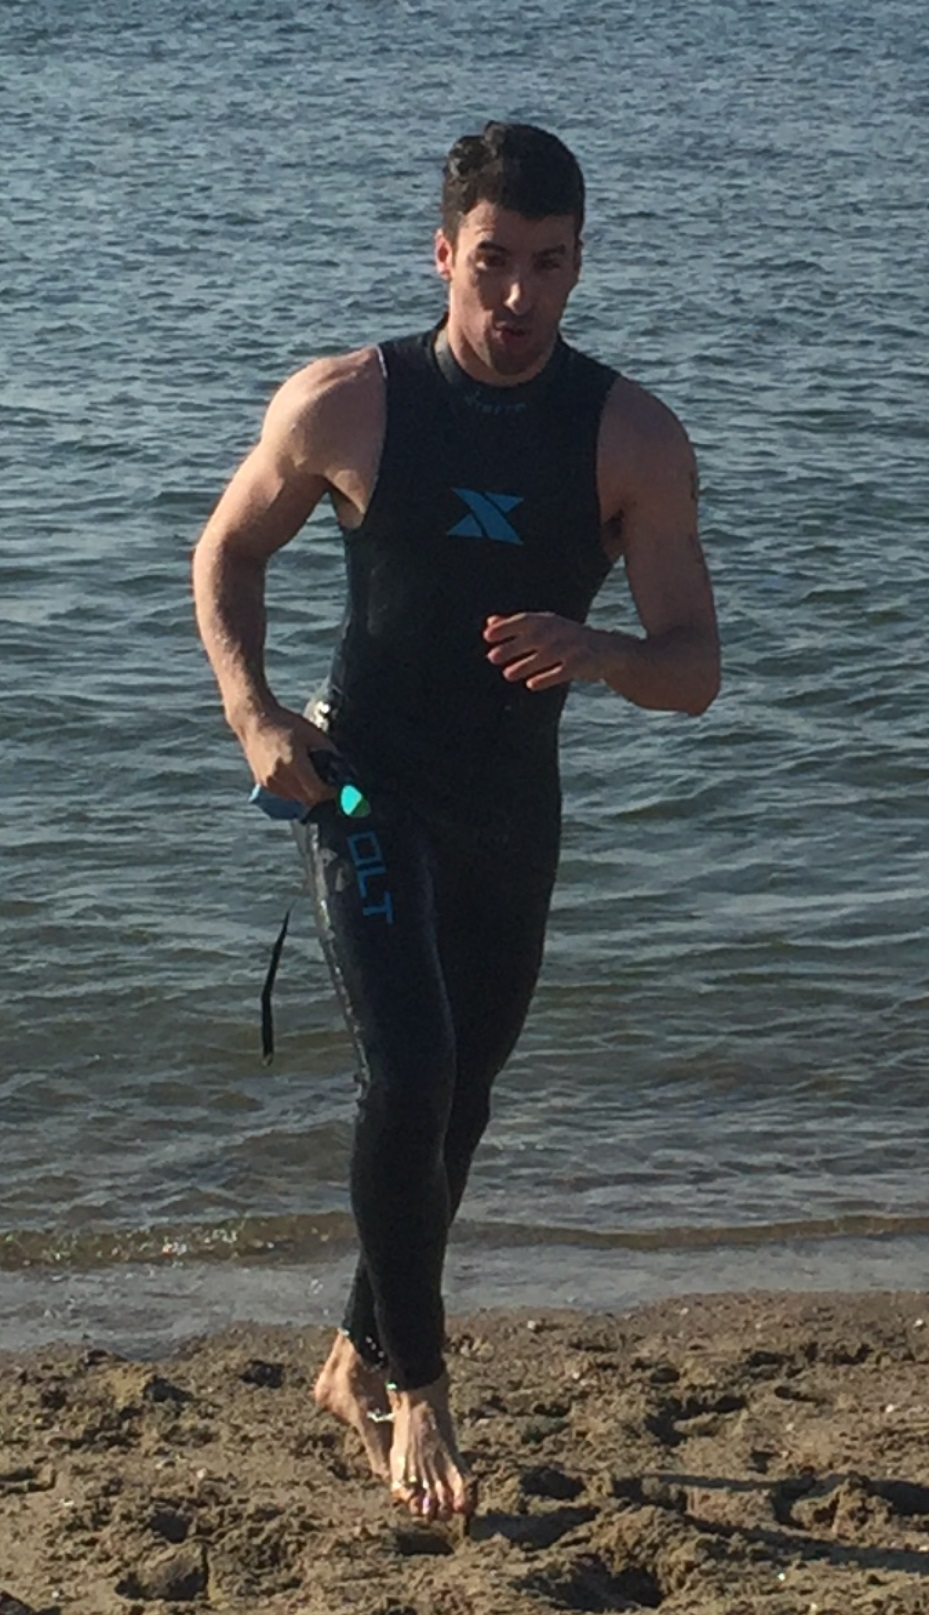 Ben Samit completes the swim portion of the 2016 Seaside Triathlon